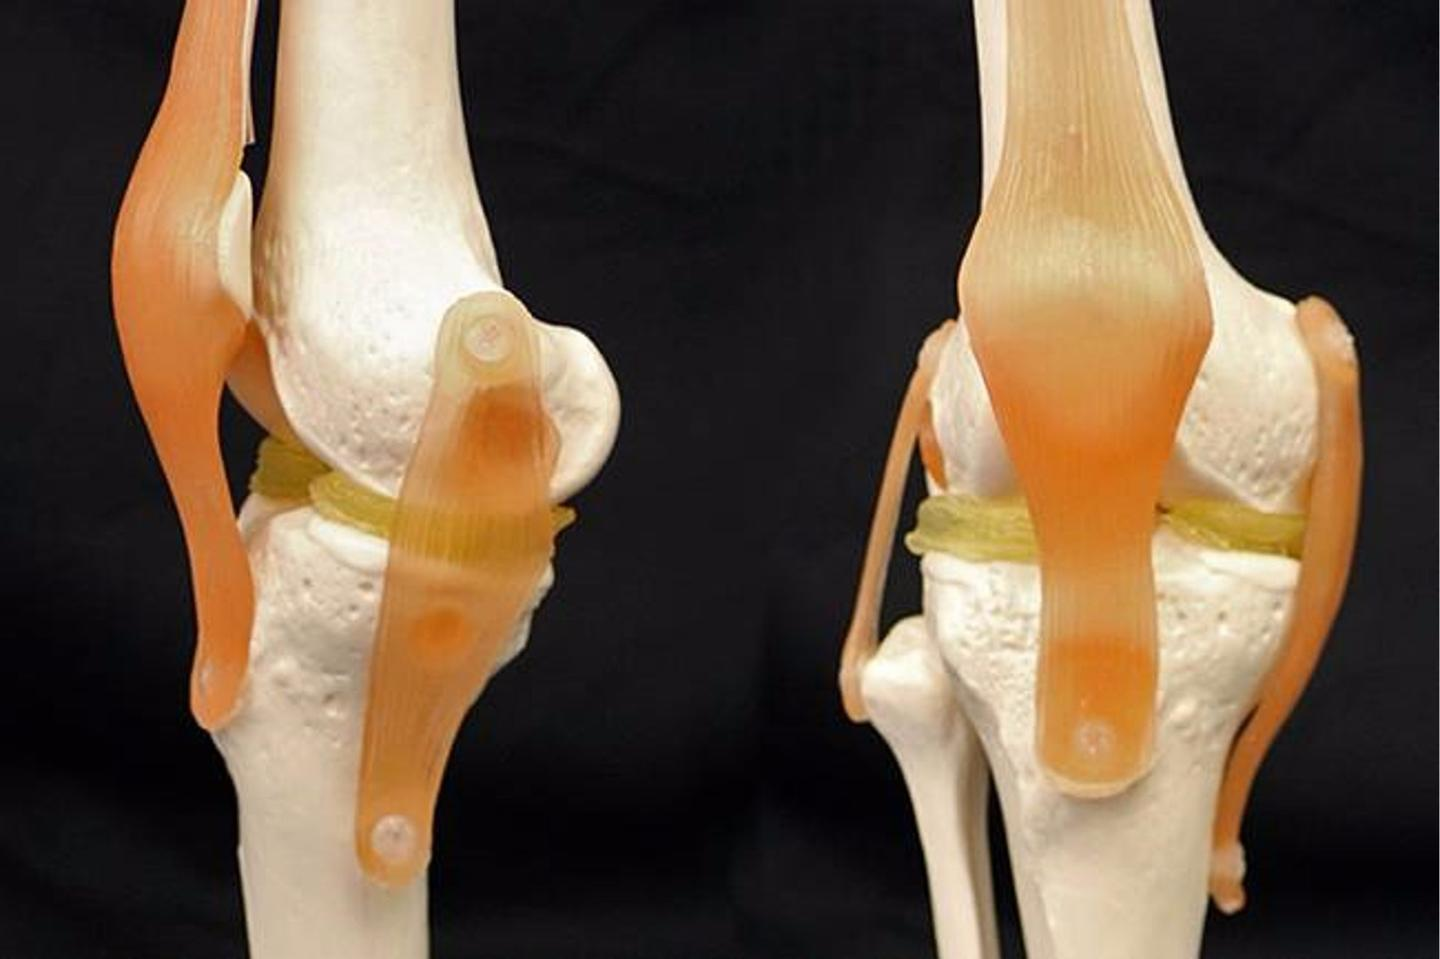 To demonstrate how their 3-D-printable, cartilage-mimicking material might work, the researchers used a US$300 3D printer to create custom menisci for a model of a knee